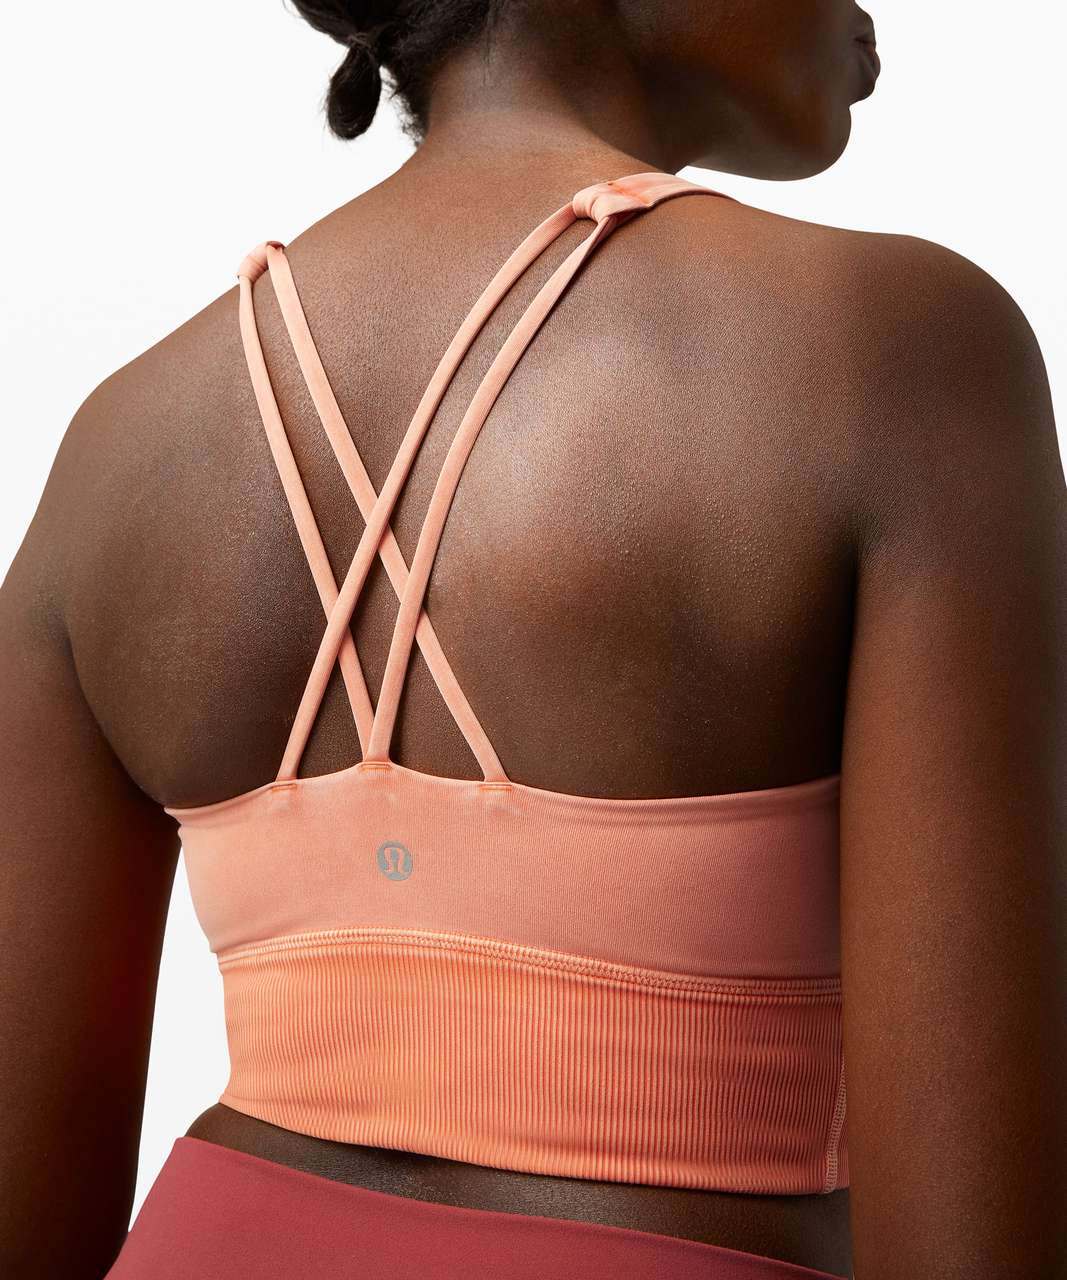 Lululemon Free To Be Bra Long Line *Rib - Snow Wash Washed Rustic Coral